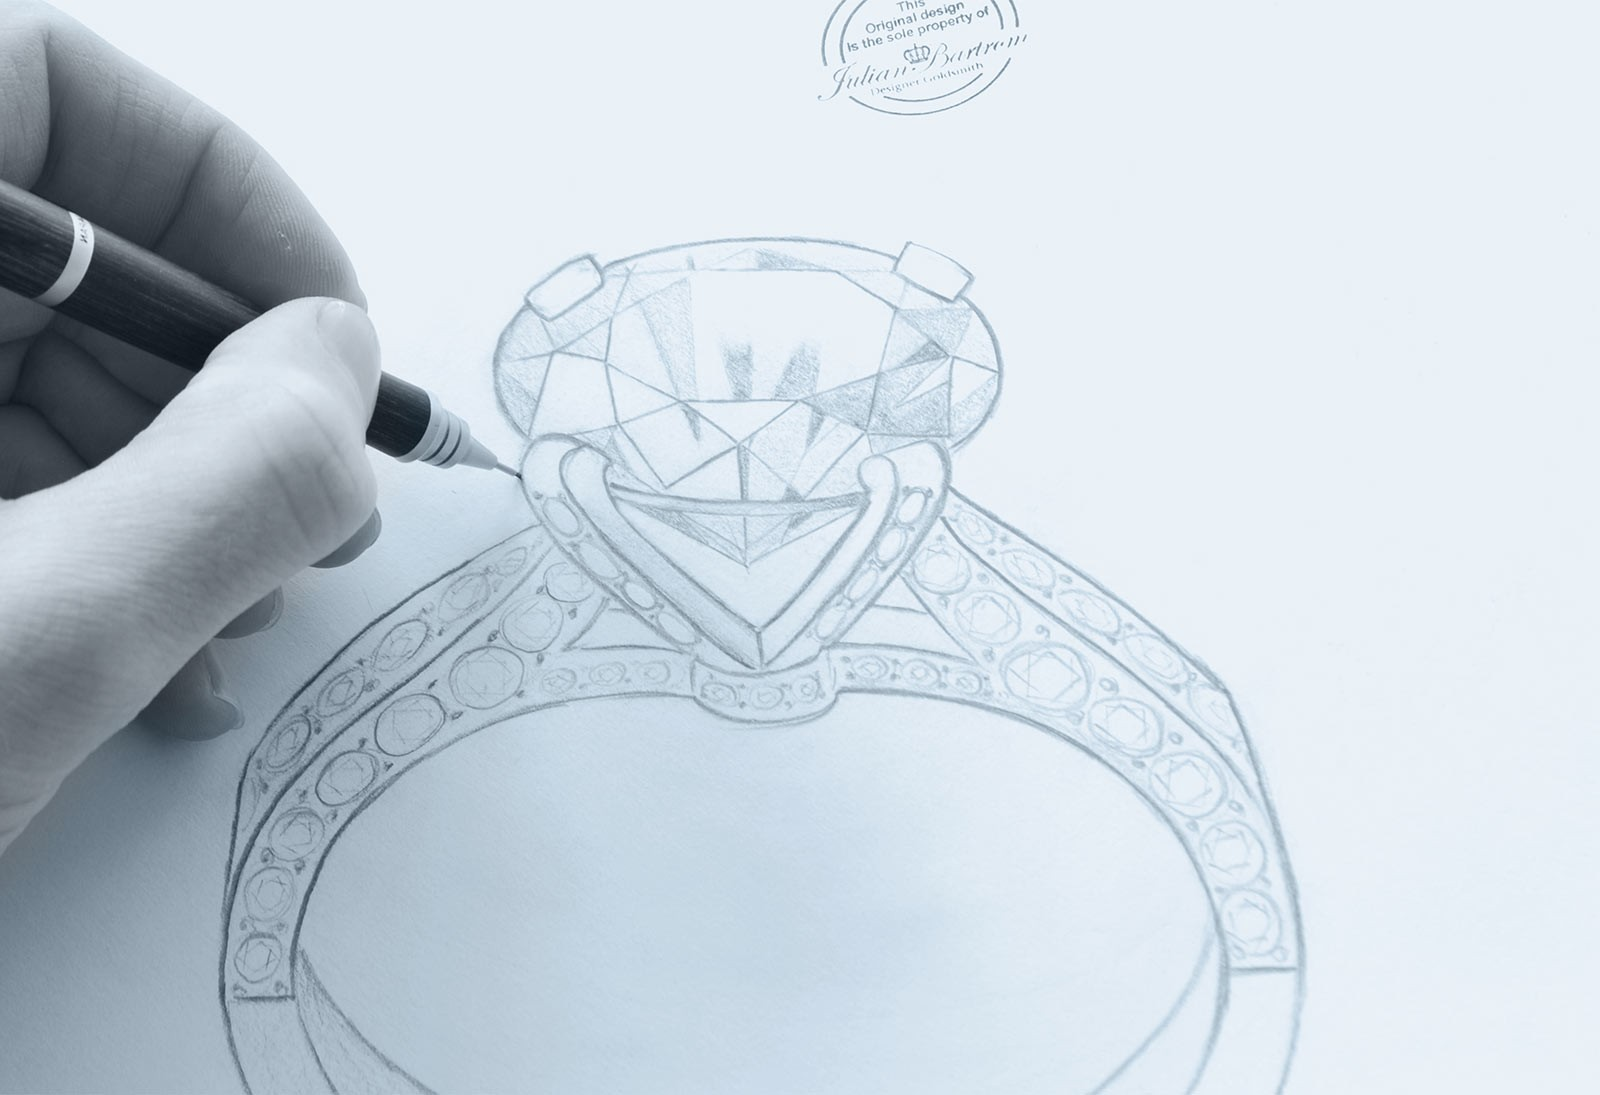 2, Develop the vision. 2ct diamond ring and custom jewellery design with jewellery expert Julian Bartrom.